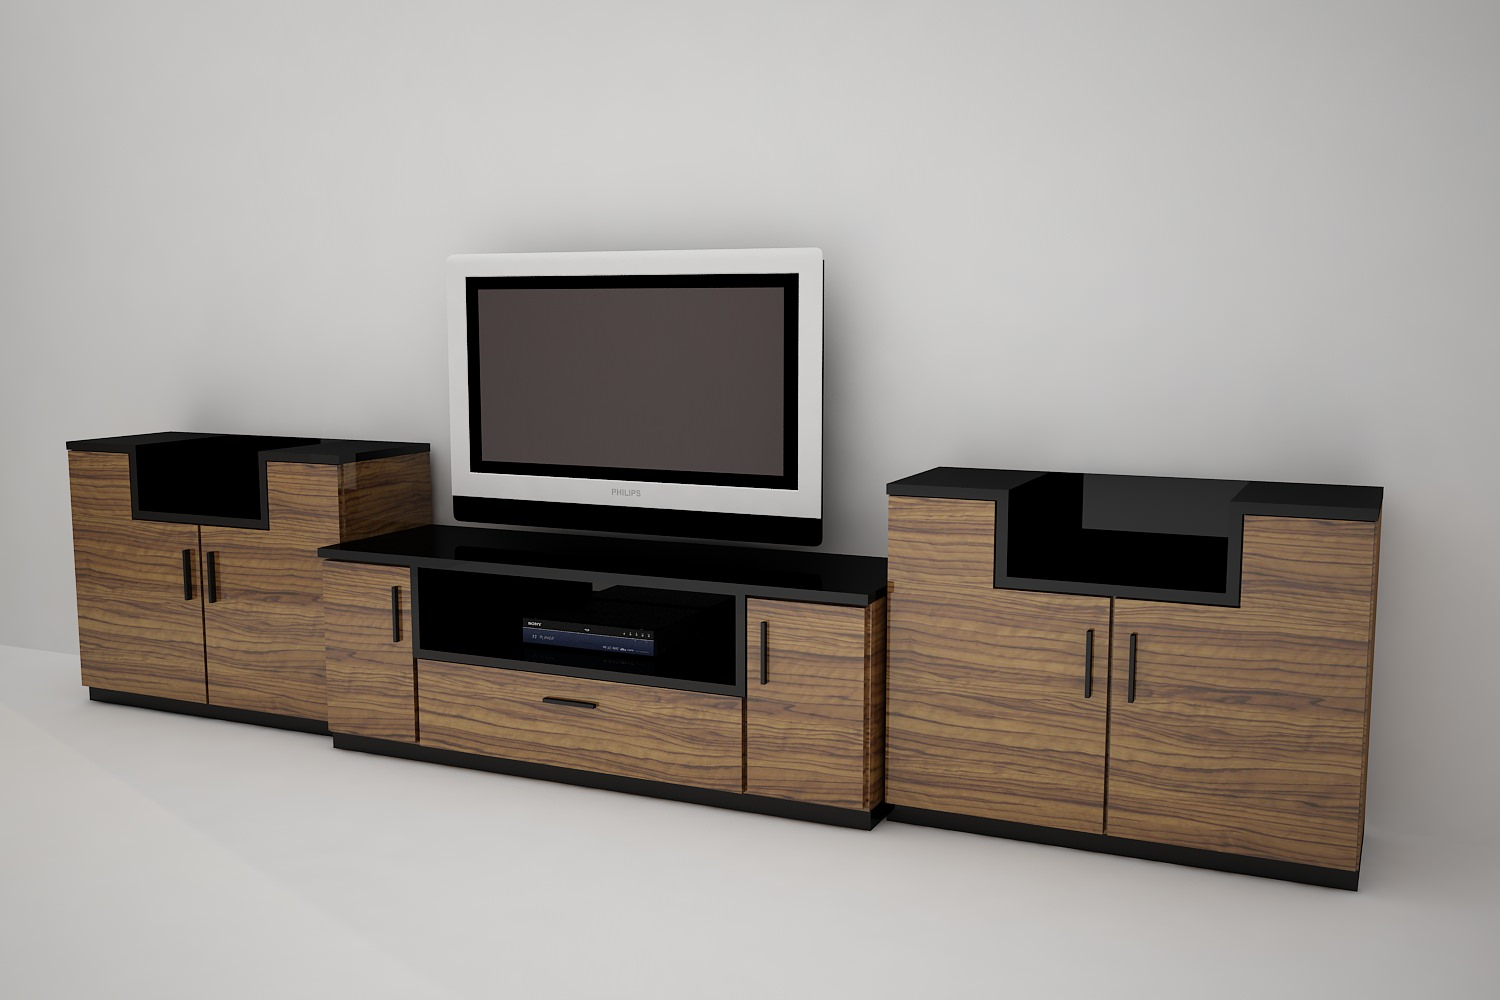 tv stand 3D Model max obj 3ds dxf  CGTradercom -> Modèle Table Tv